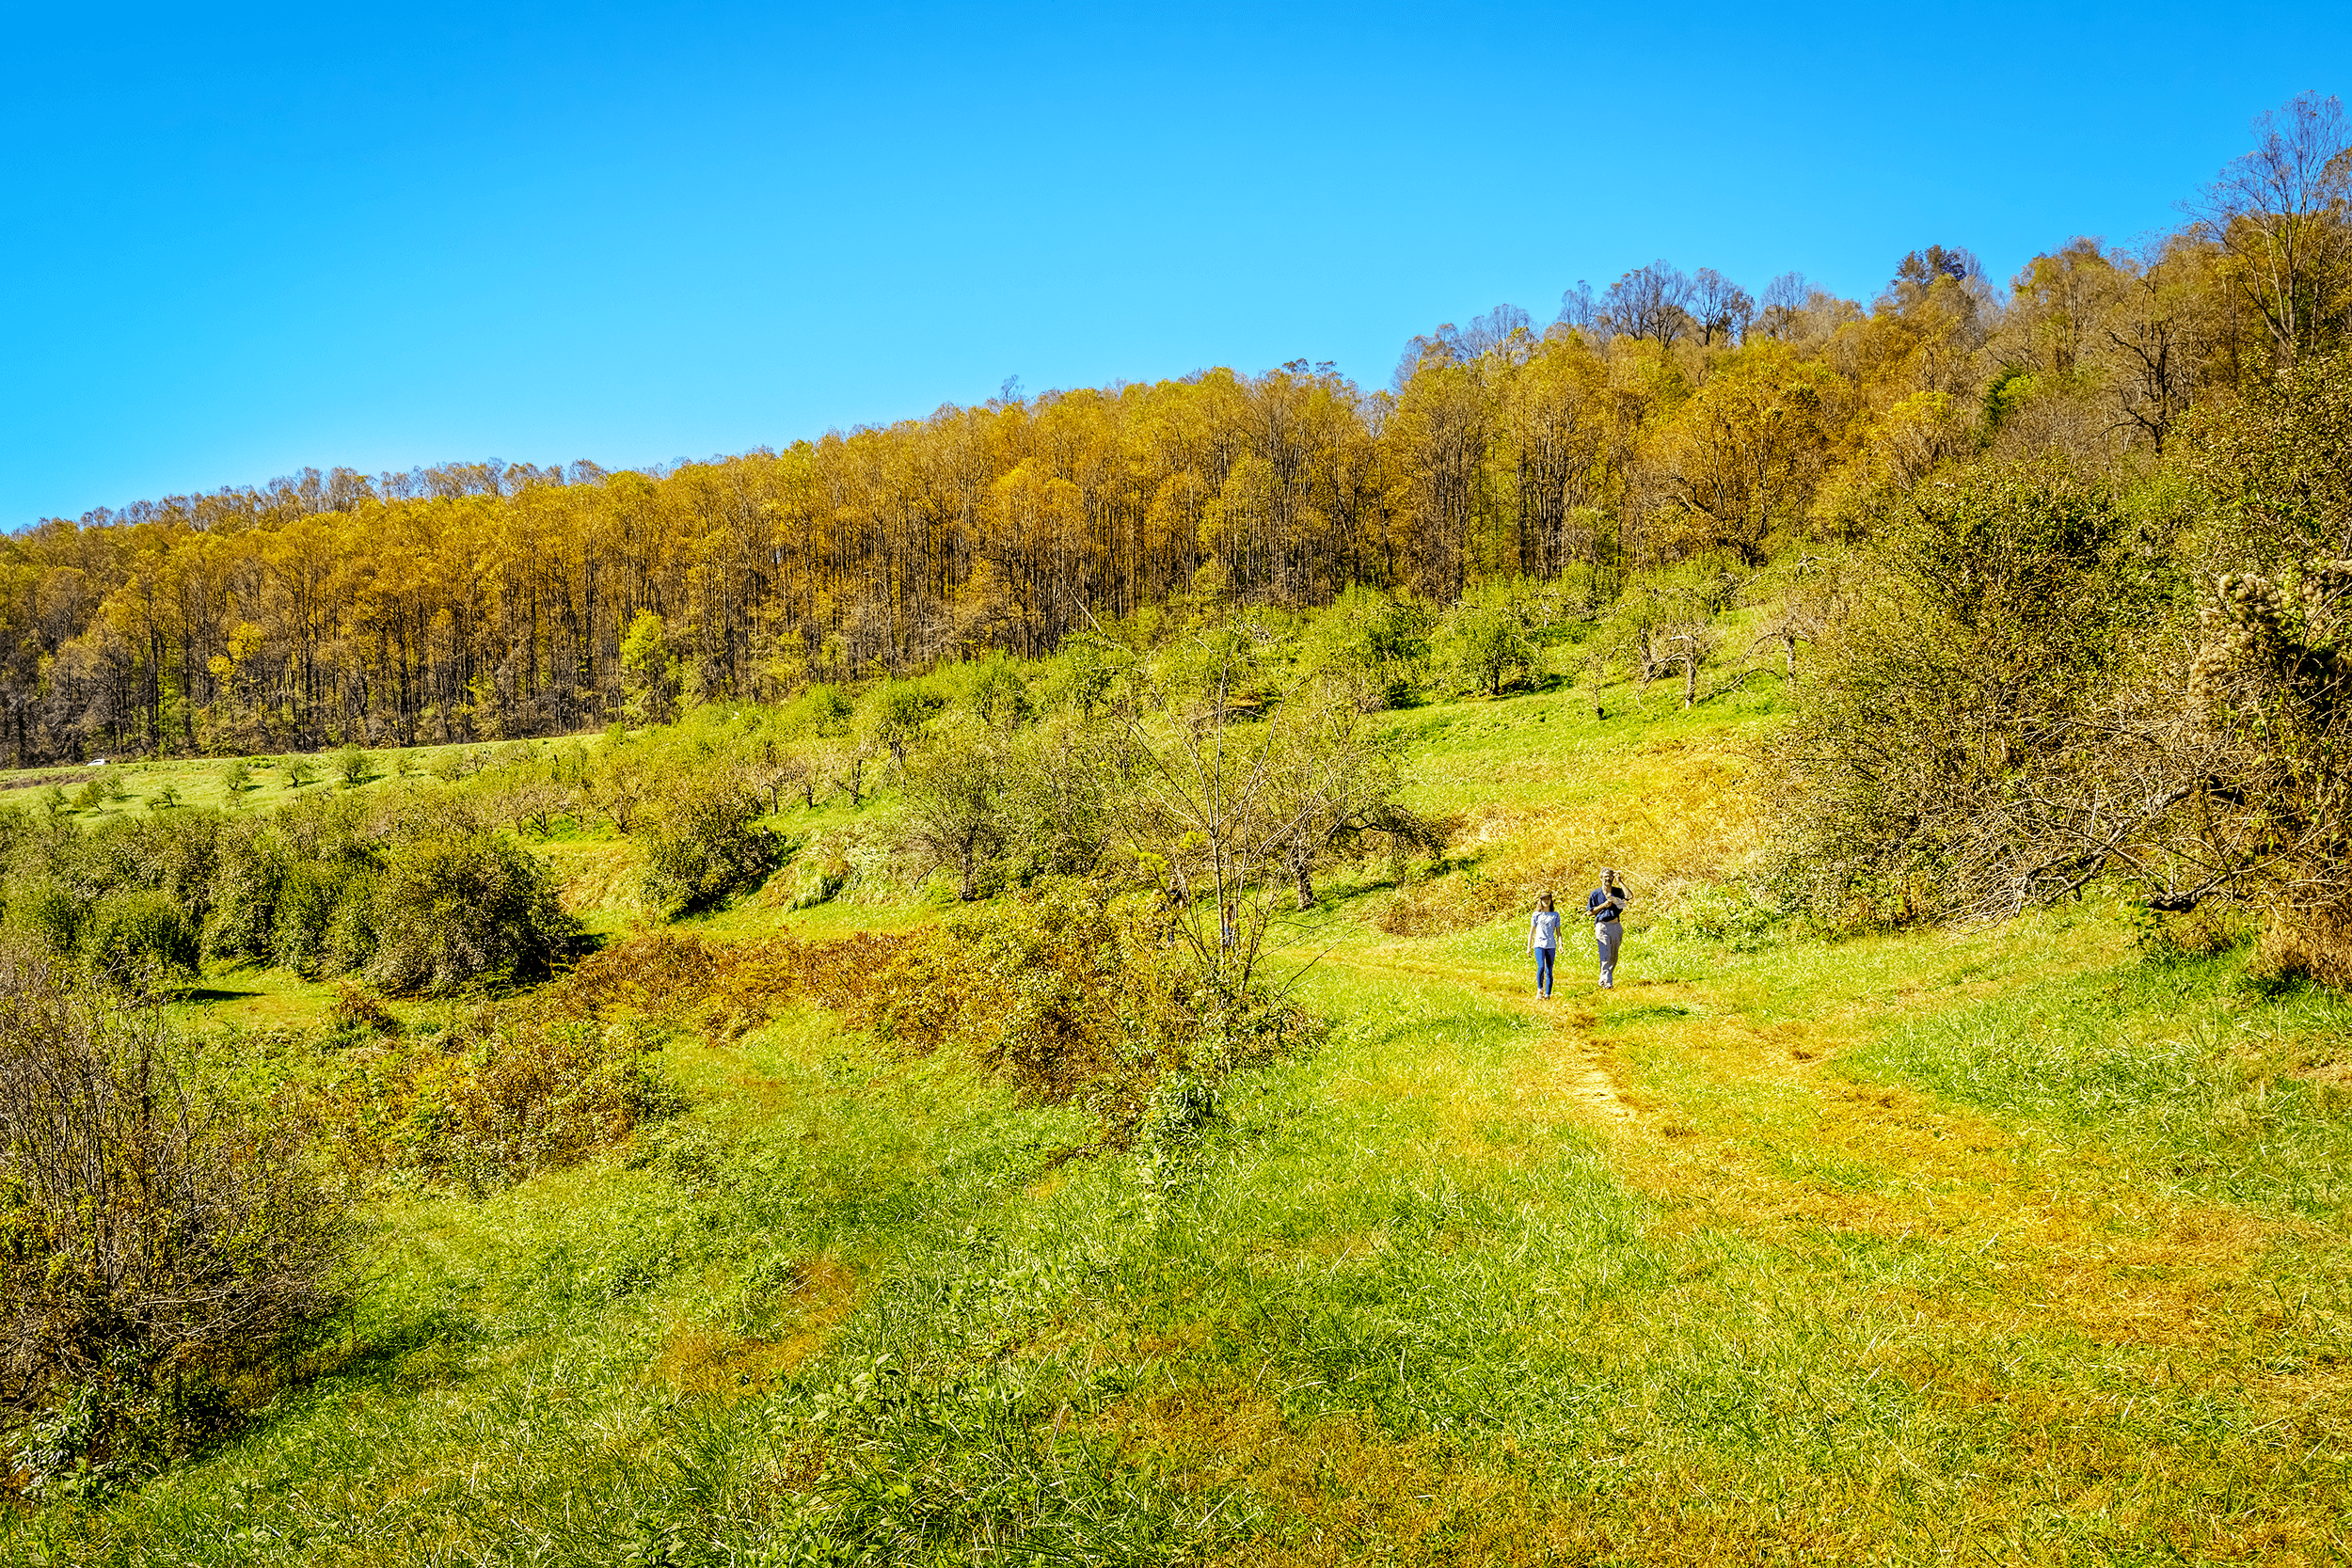 Several short, easy to moderate hiking trails lead through the orchard along rows of apple trees.